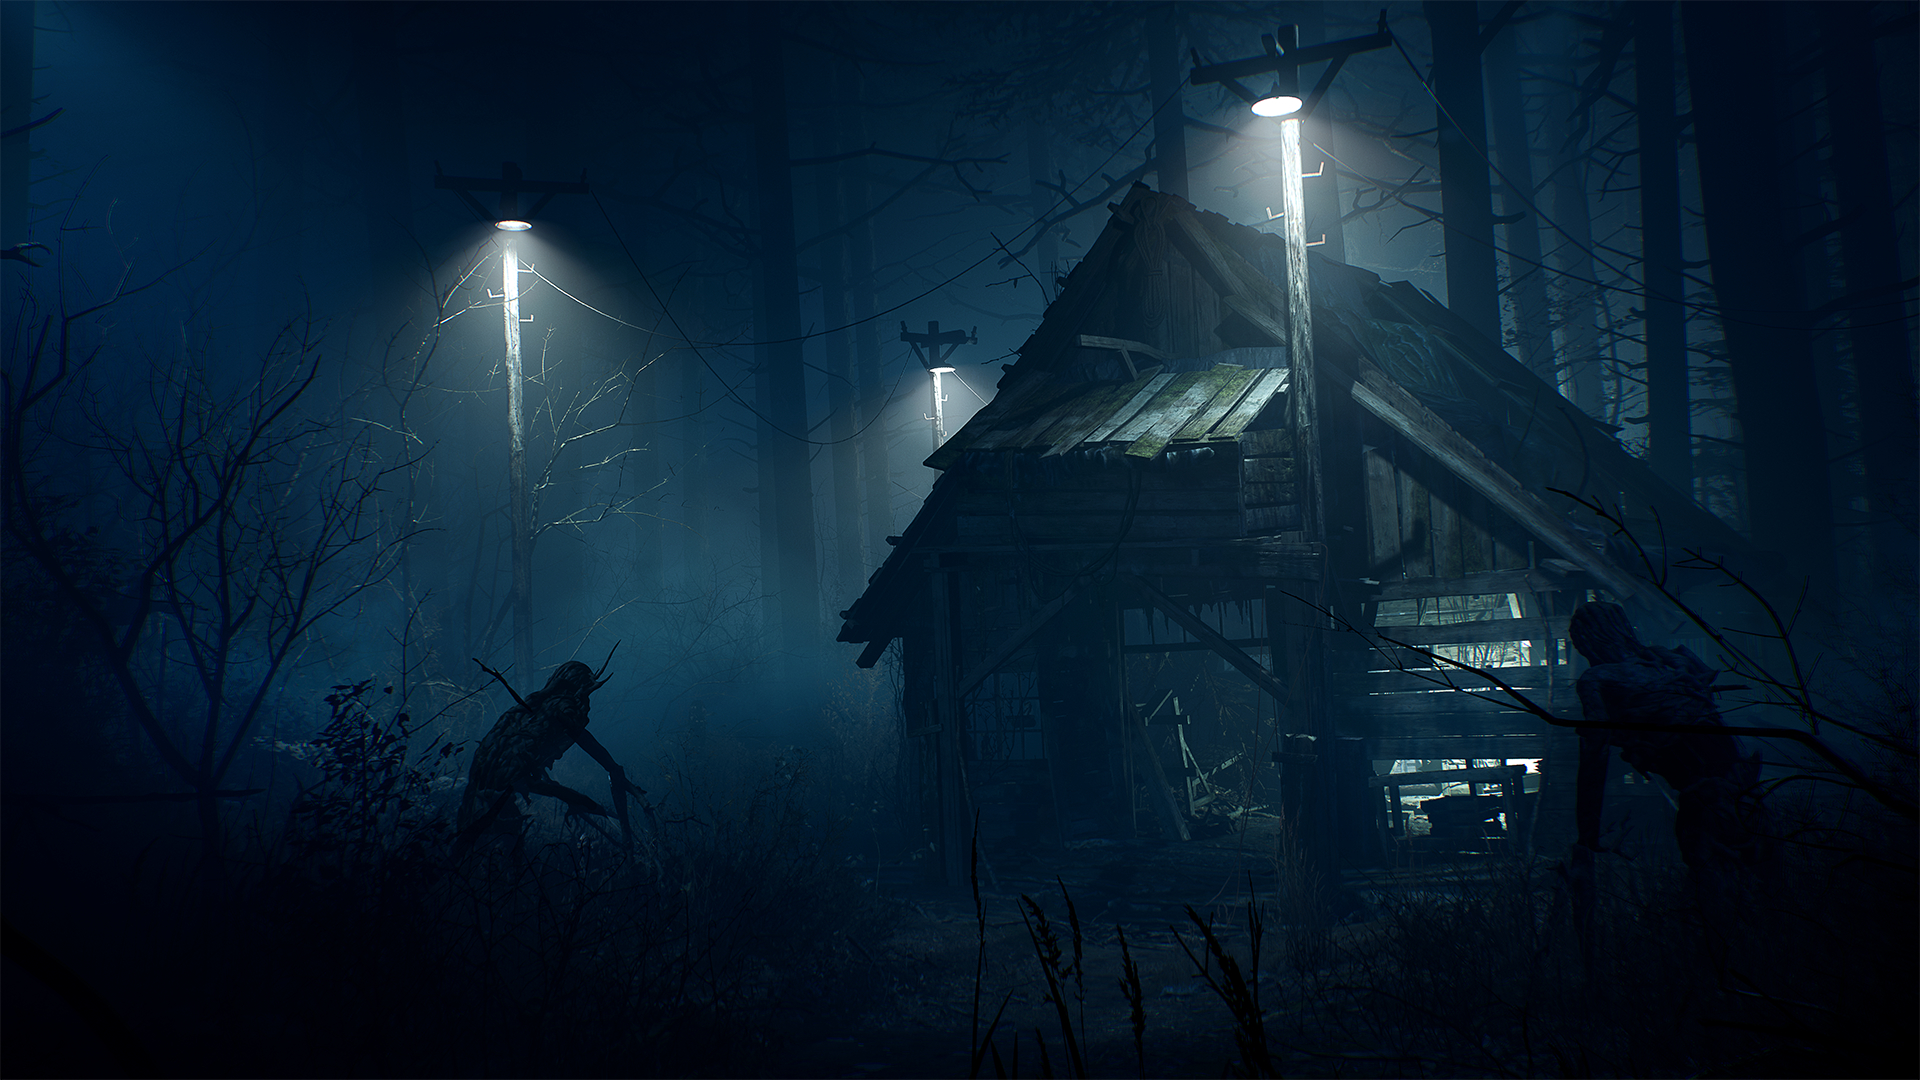 Blair Witch 2019 Game Wallpaper Hd Games 4k Wallpapers